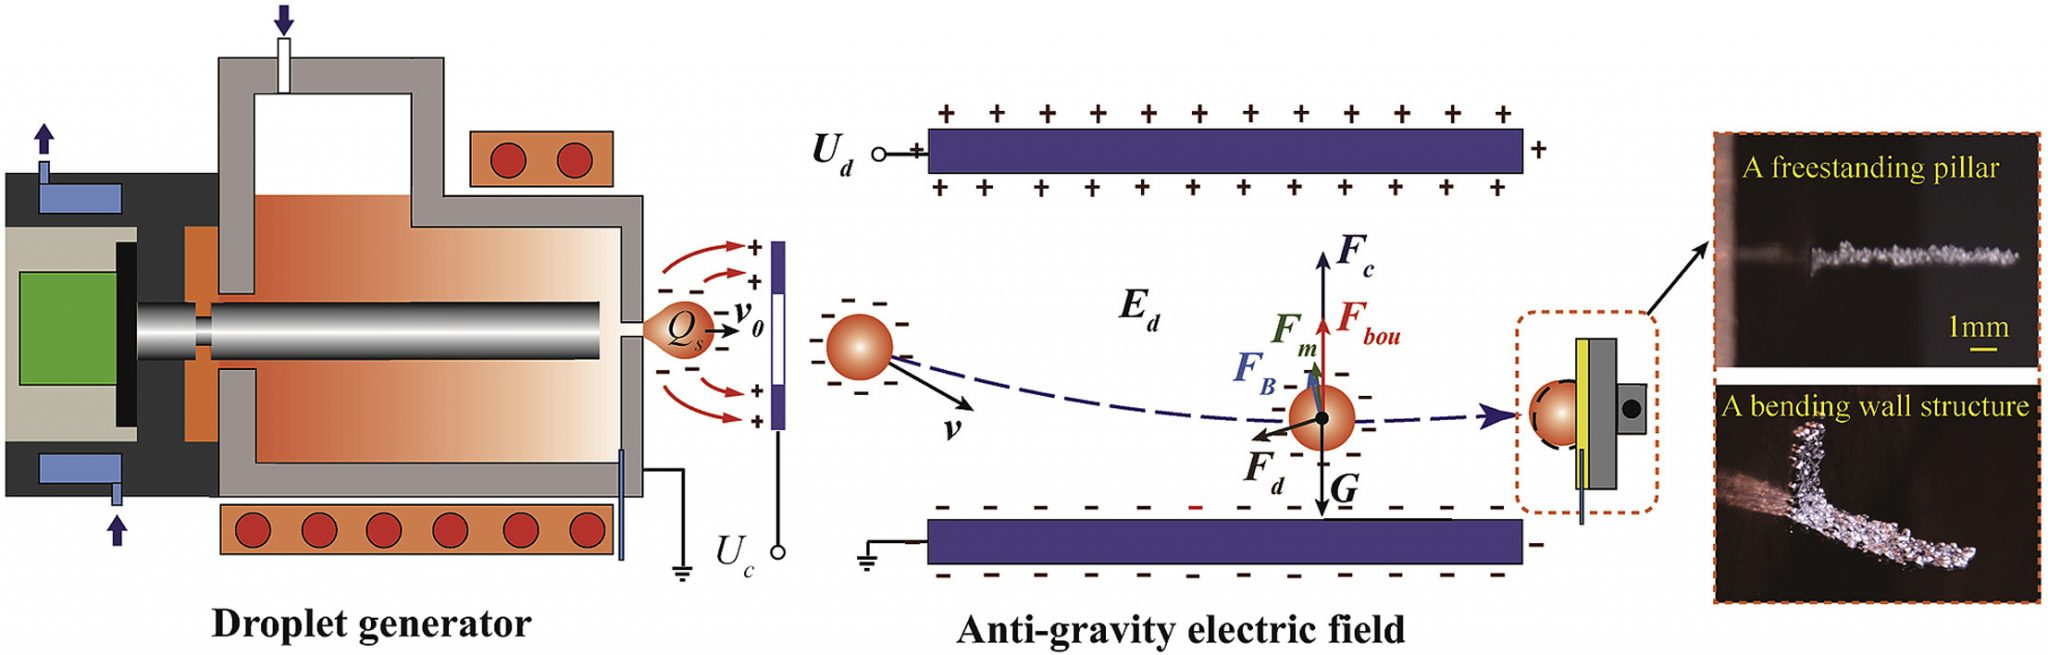 Diagram of the anti-gravity electric field and droplet deposition. Image via International Journal of Machine Tools and Manufacture.